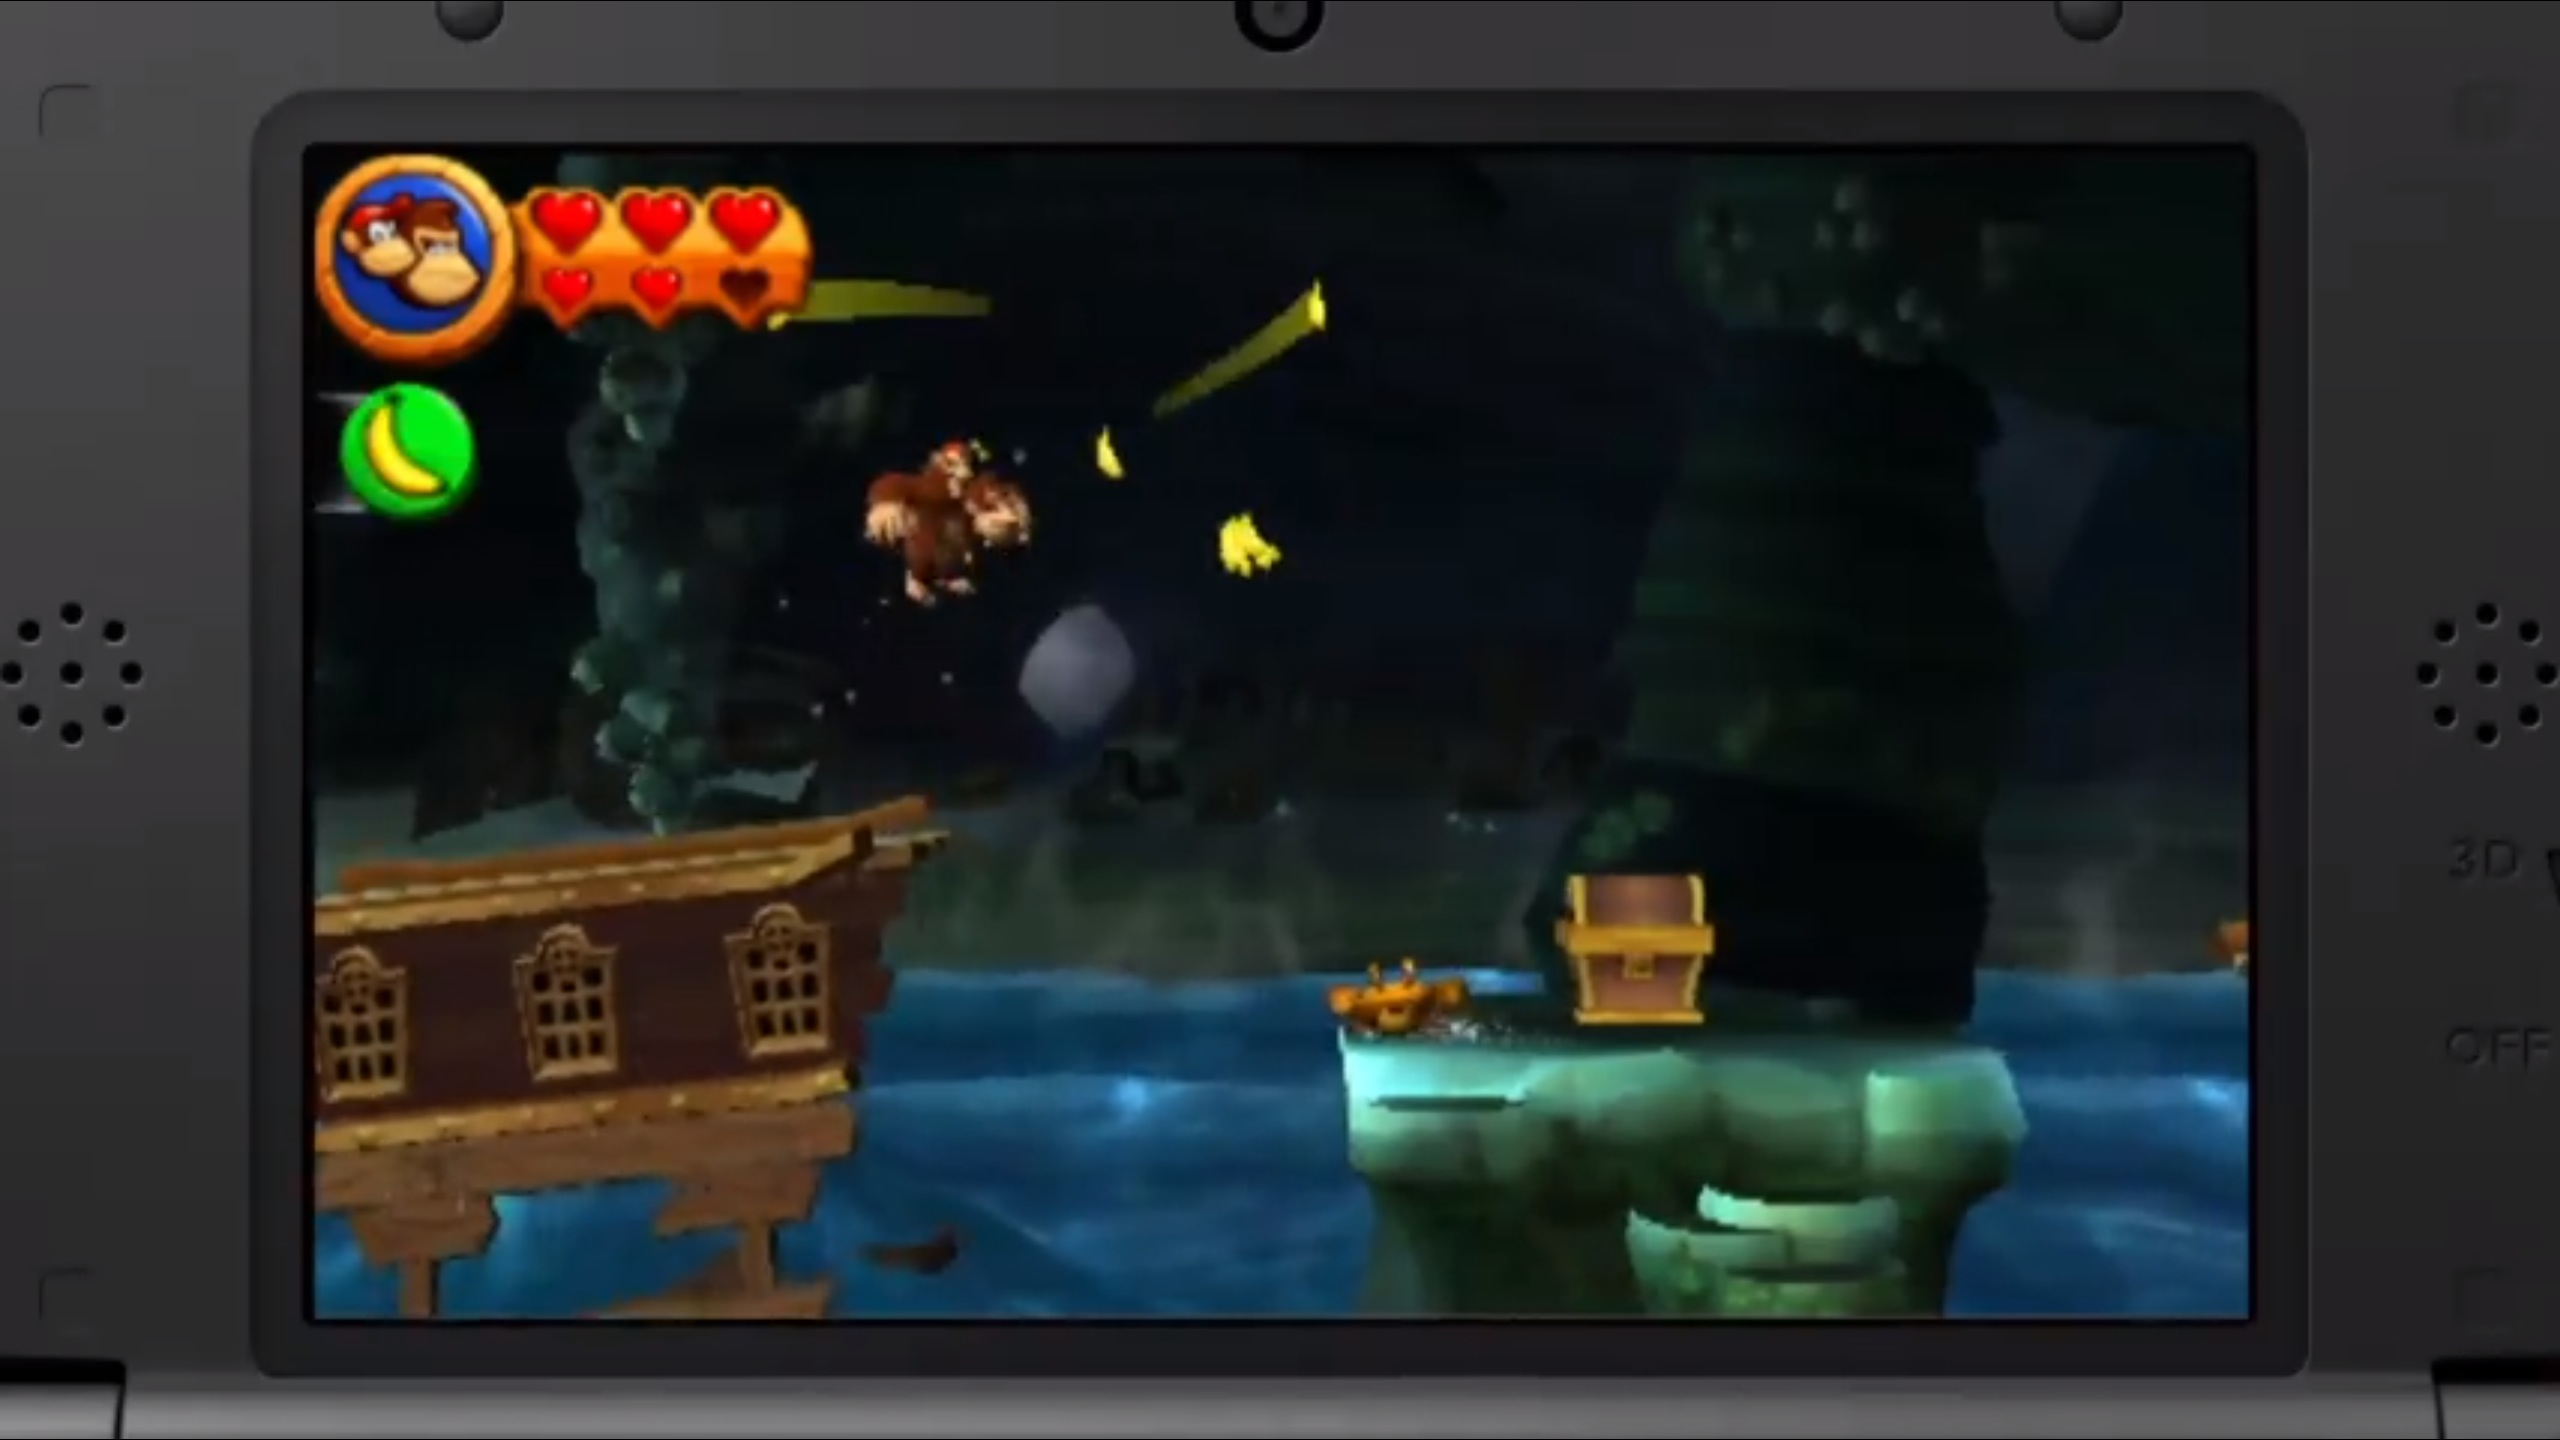 Donkey Kong Nintendo Direct Latest Nintendo Direct Press Conference: Focuses On New 3DS Titles